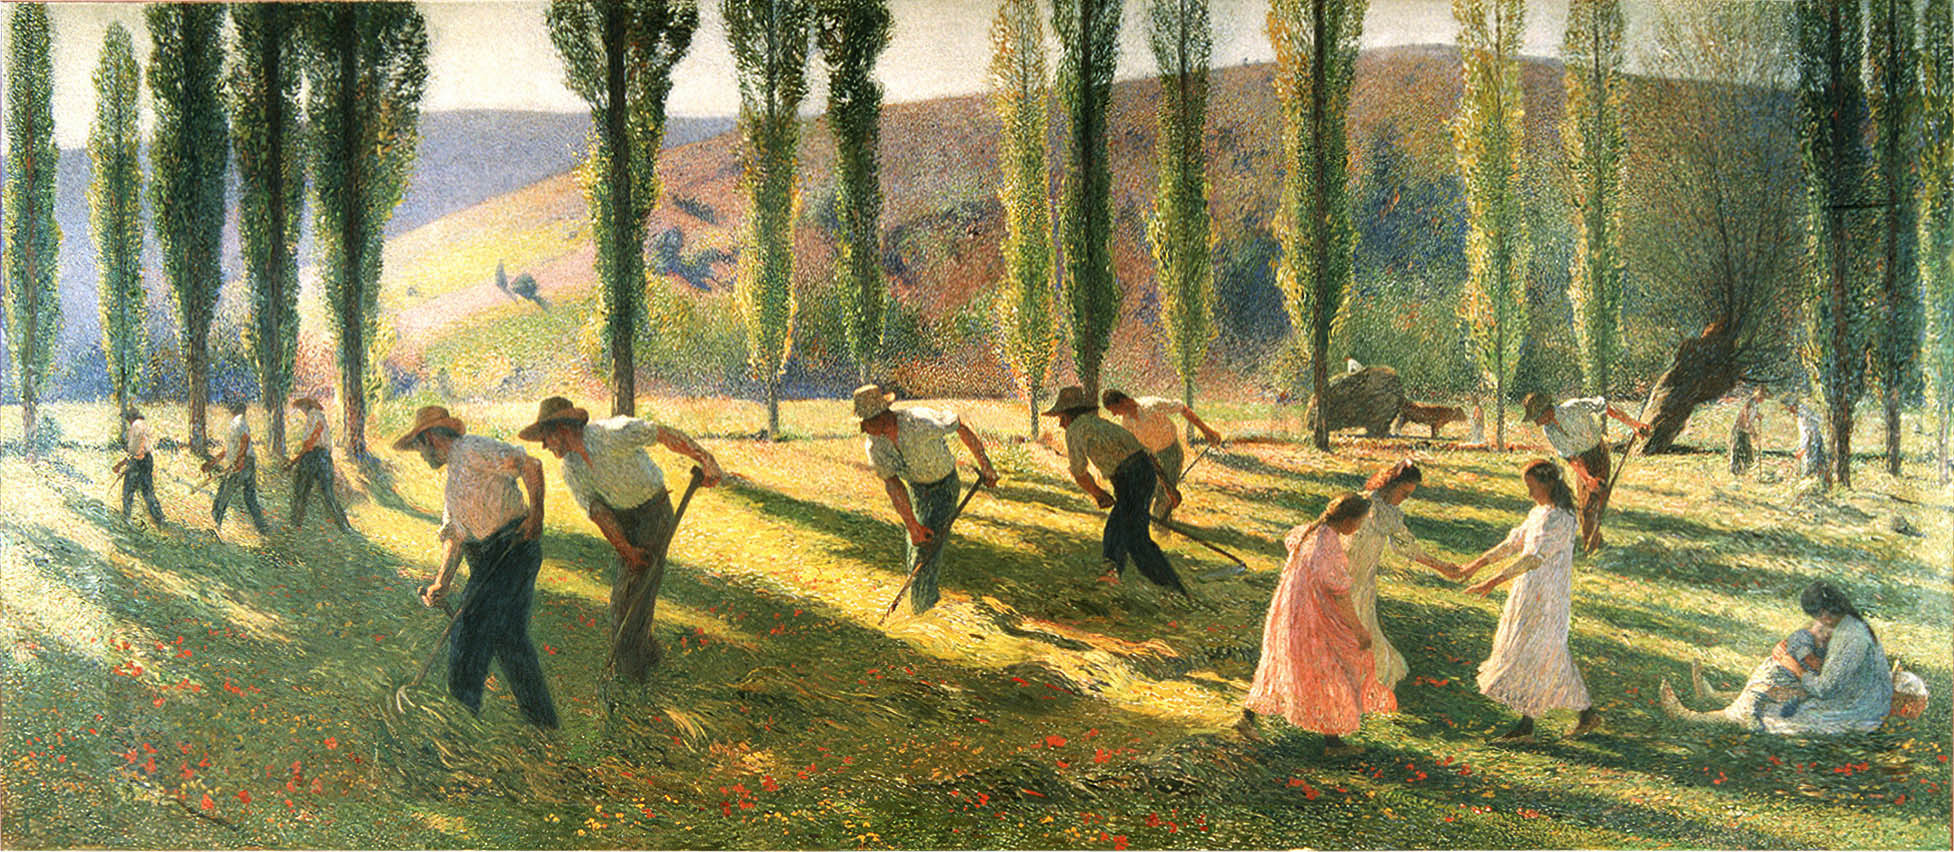 Into The Light: Henri Martin, The French Post Impressionist 1